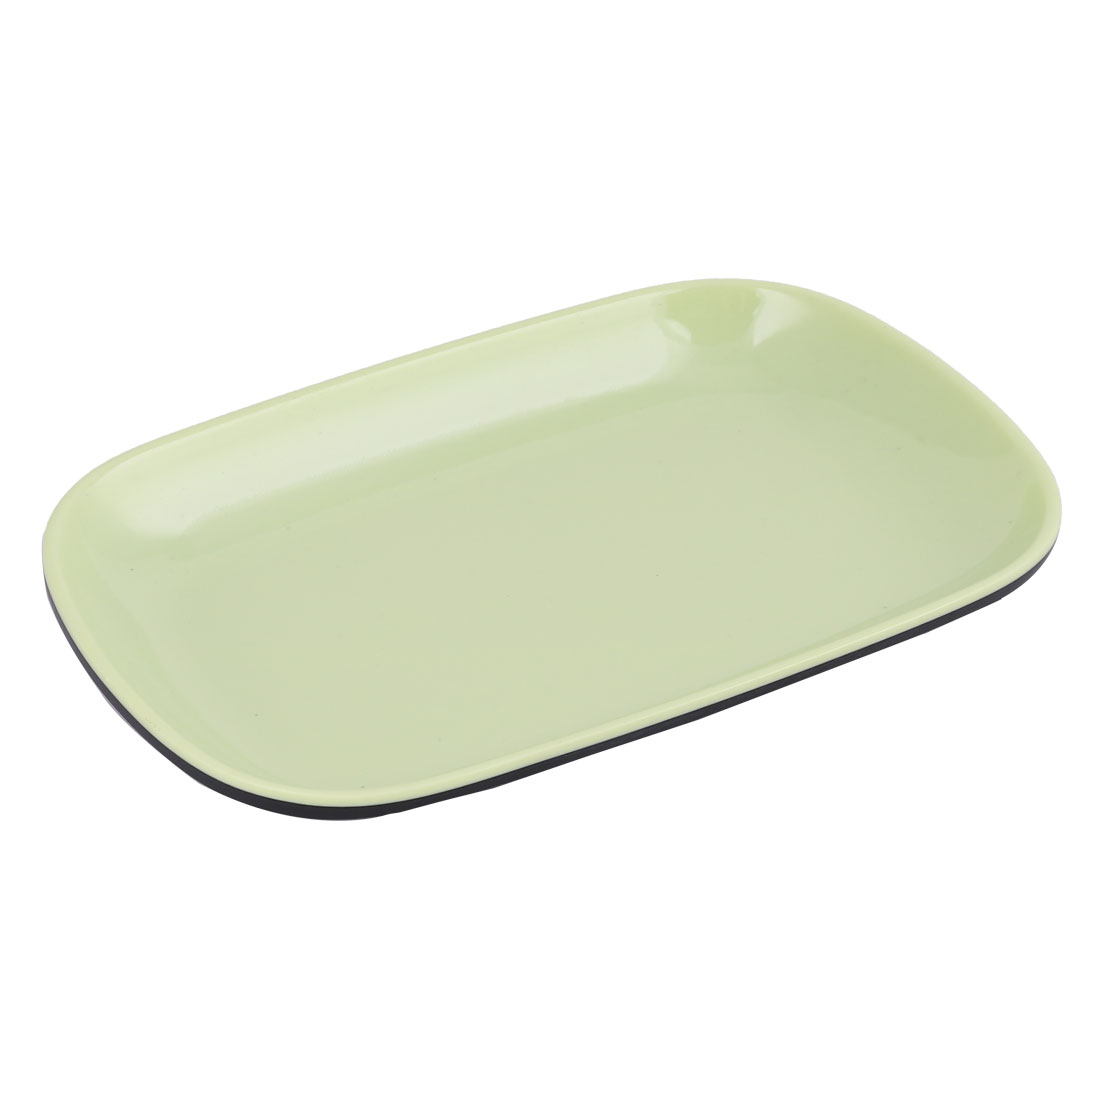 Home Kitchenware Melamine Oval Shaped Food Fruit Vegetable Plate Tray Dish Green  sc 1 st  Walmart.com & Home Kitchenware Melamine Oval Shaped Food Fruit Vegetable Plate ...